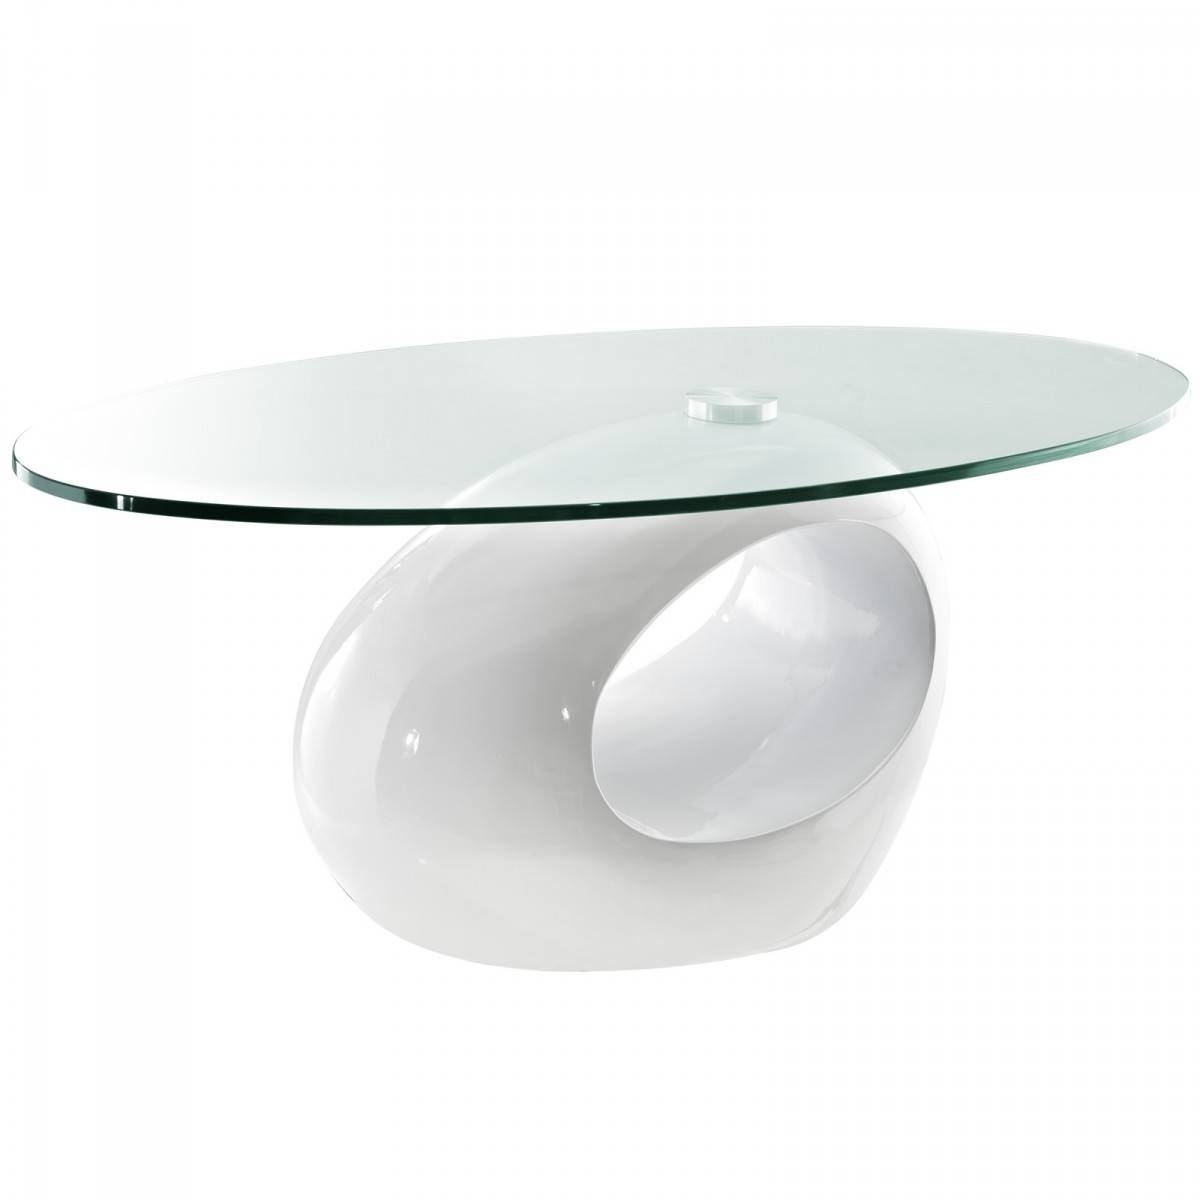 Coffee Table: Charming White Modern Coffee Table Ideas White pertaining to Oval White Coffee Tables (Image 4 of 30)